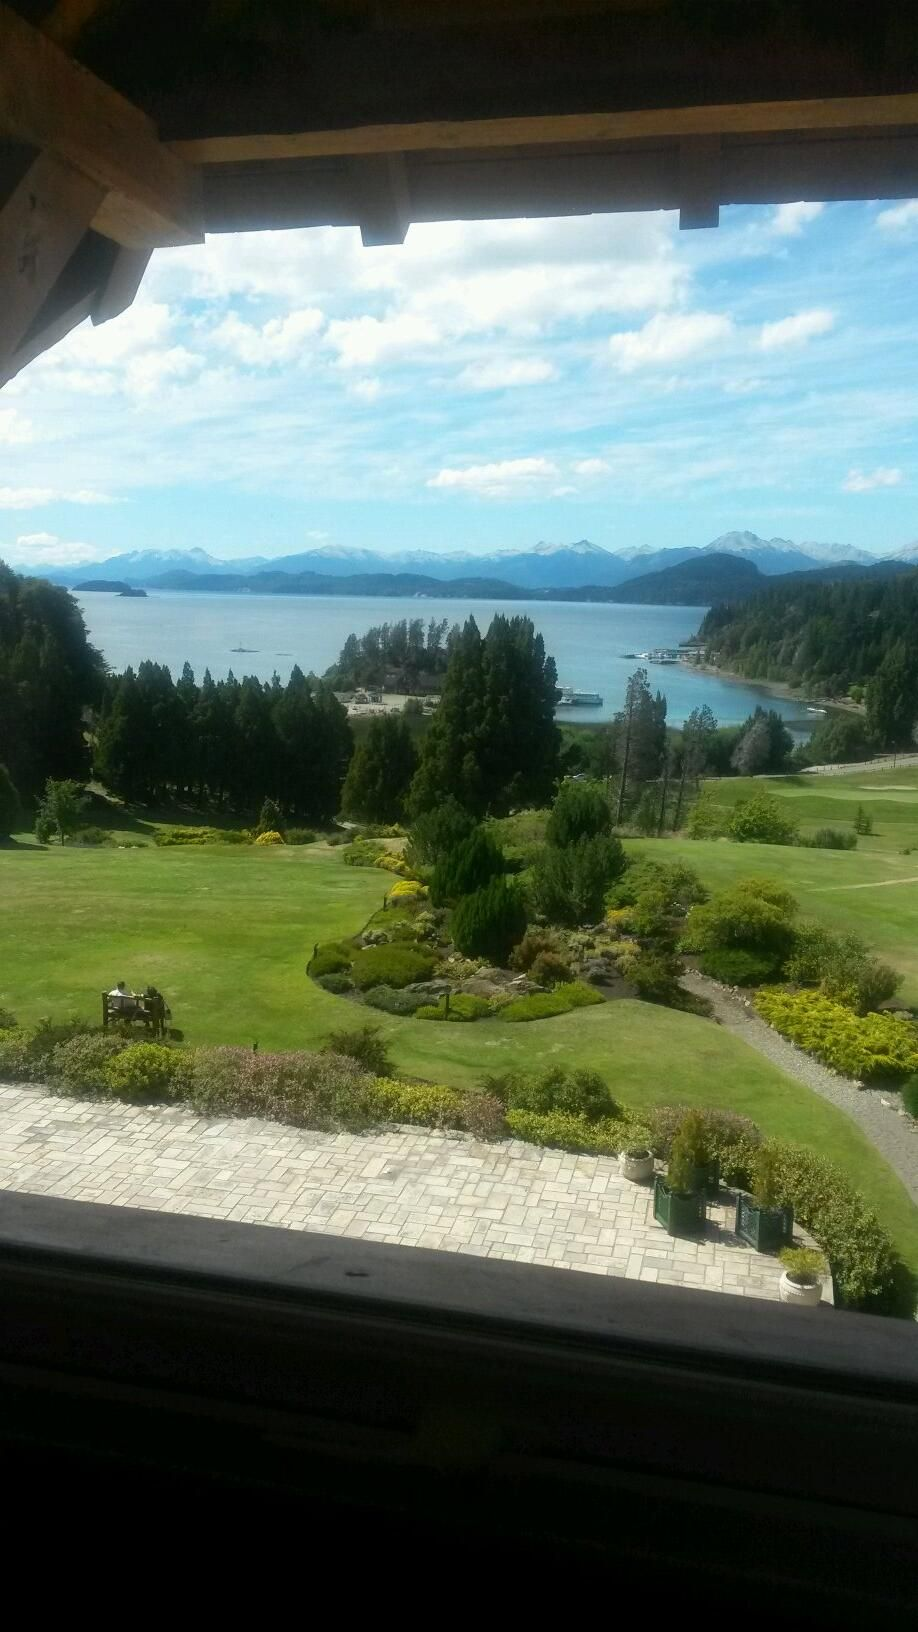 Twitter / ladyprada4: #RoomWithAView @Llao Llao Hotel & Resort, Golf - Spa - Bariloche - ...